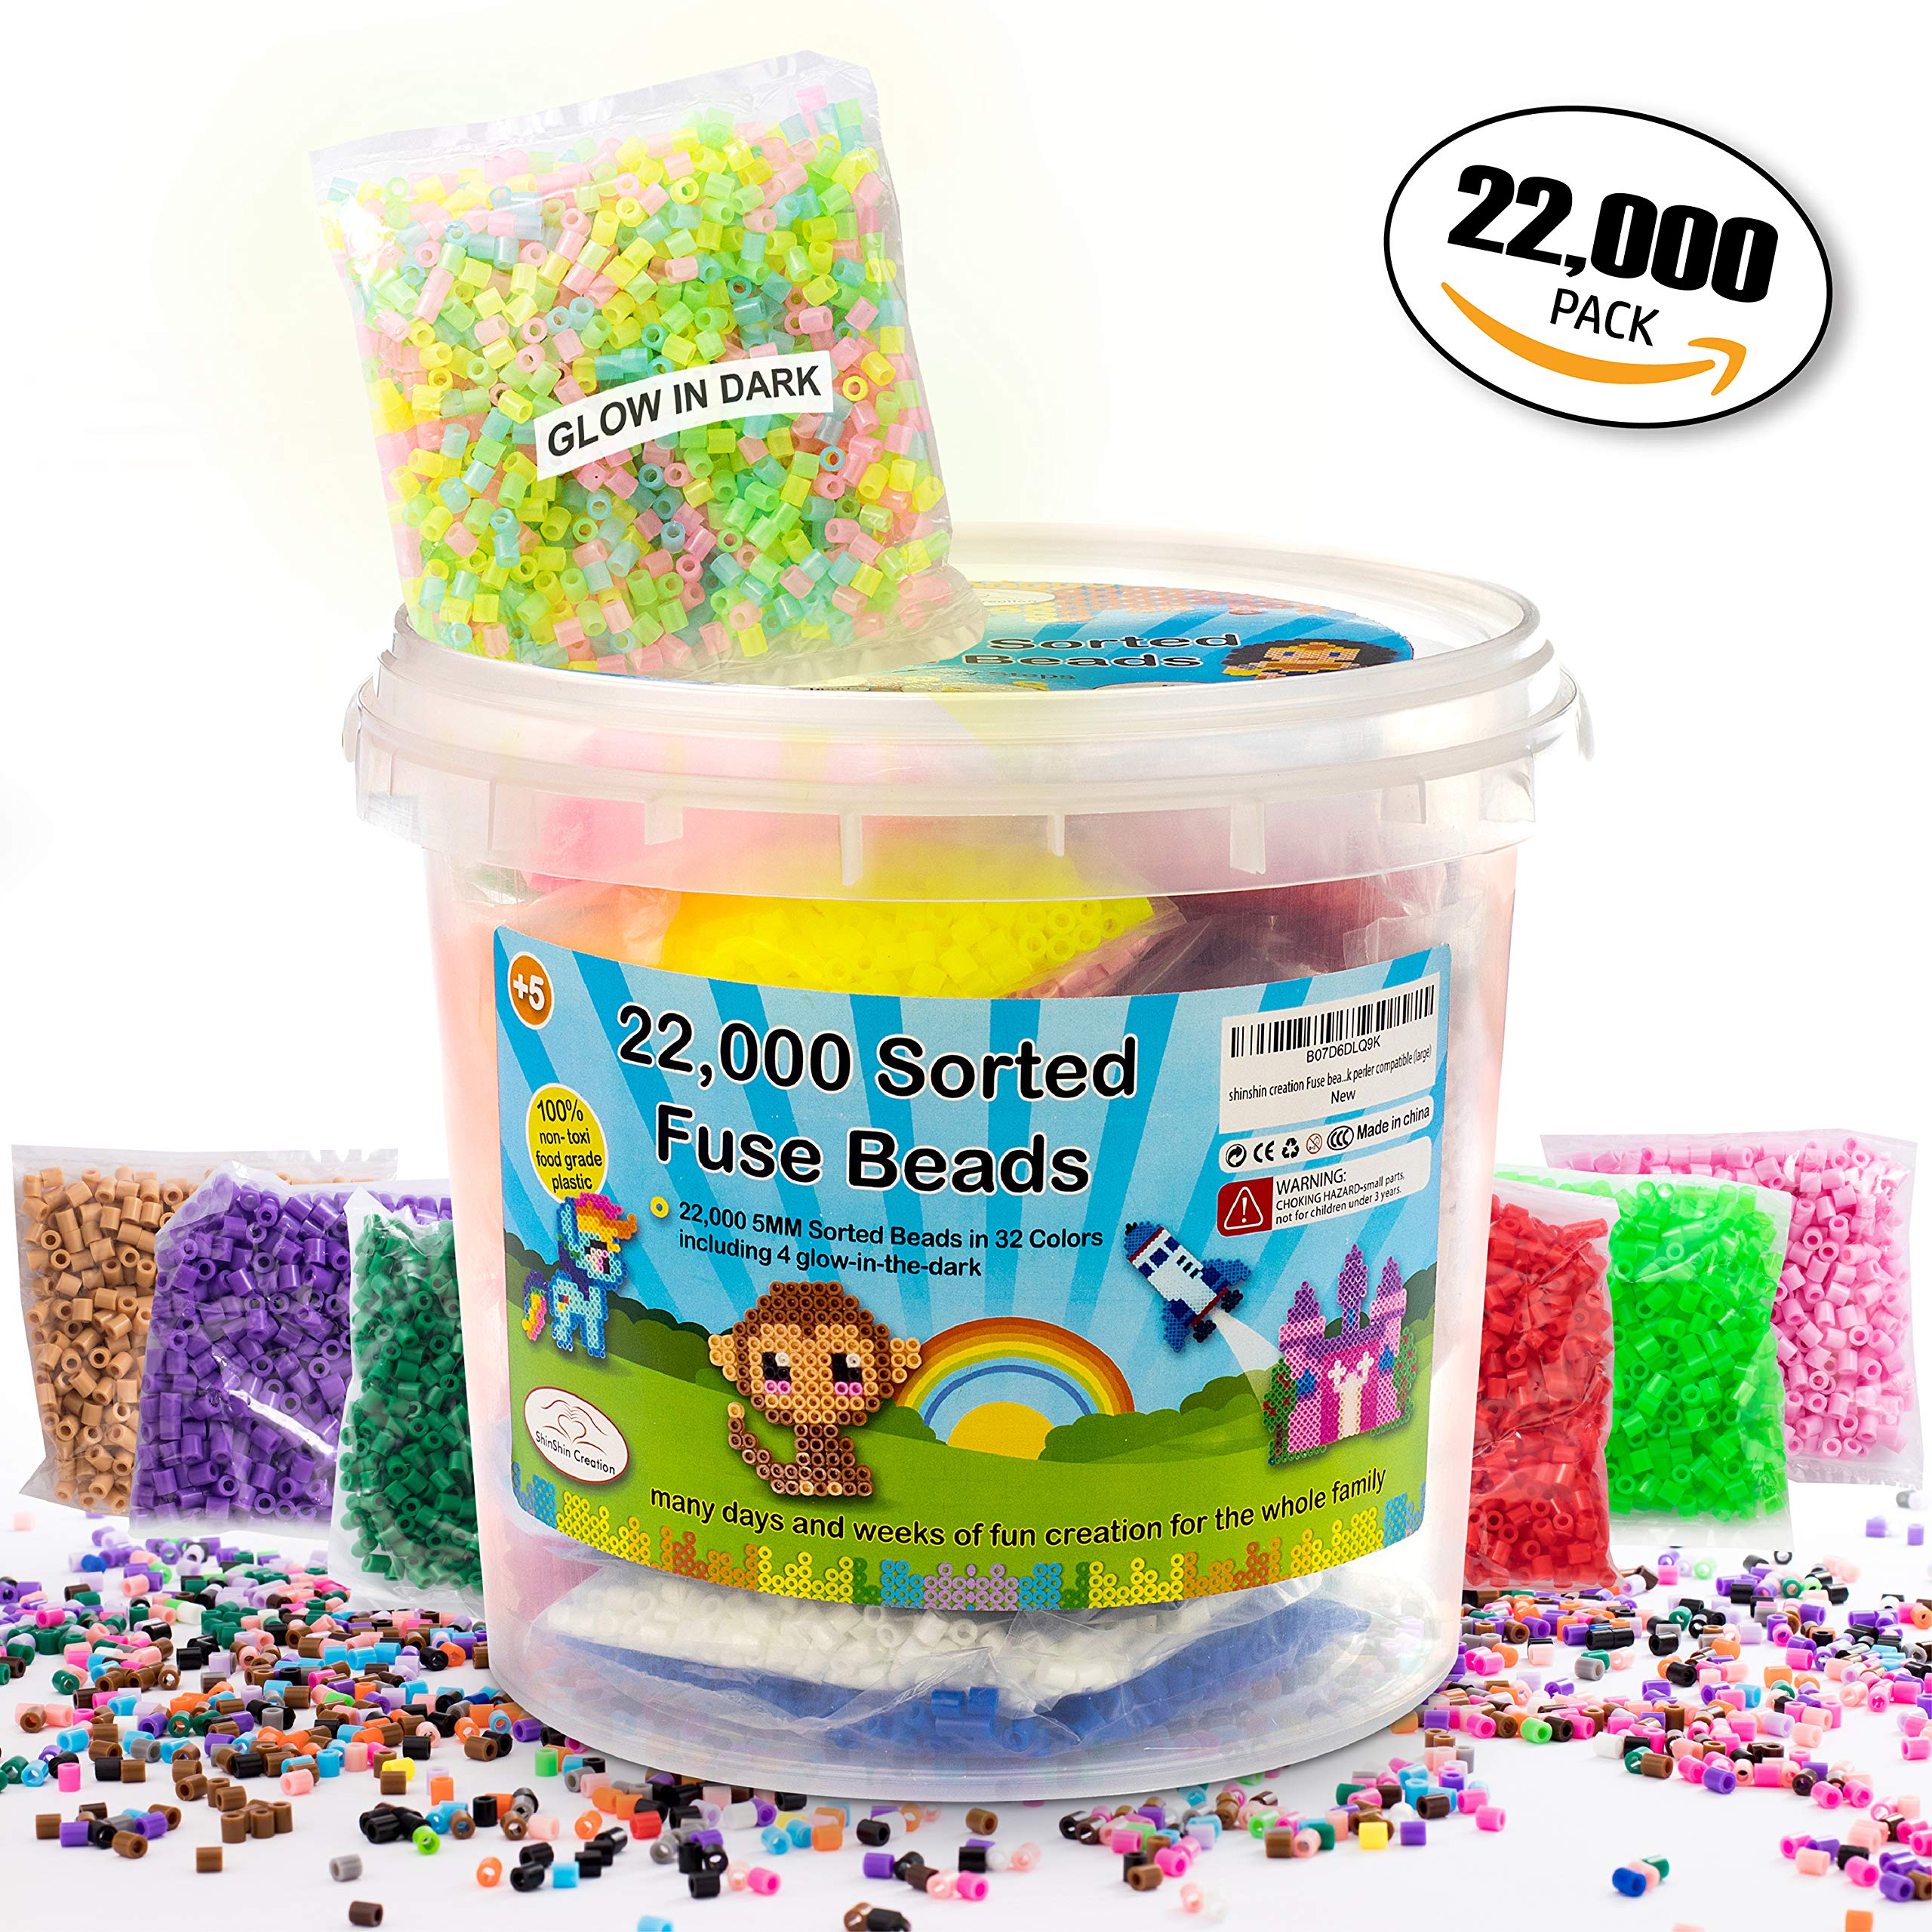 shinshin creation 22,000 Pre - Sorted Fuse Beads Bucket Size 5mm 32 Colors Including Glow in The Dark Perler Compatible